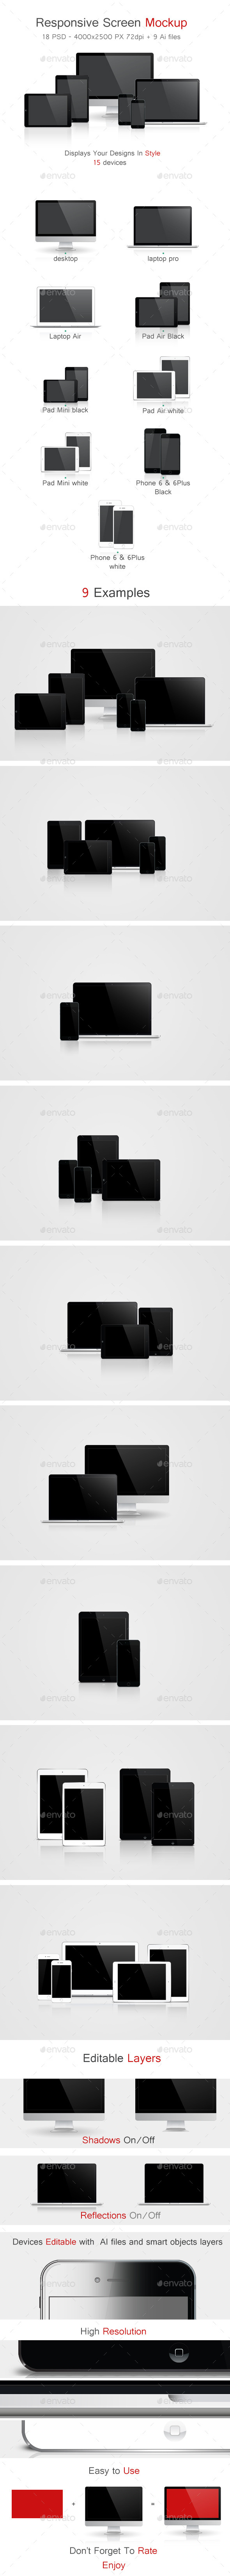 Responsive Screen Mockup - Multiple Displays